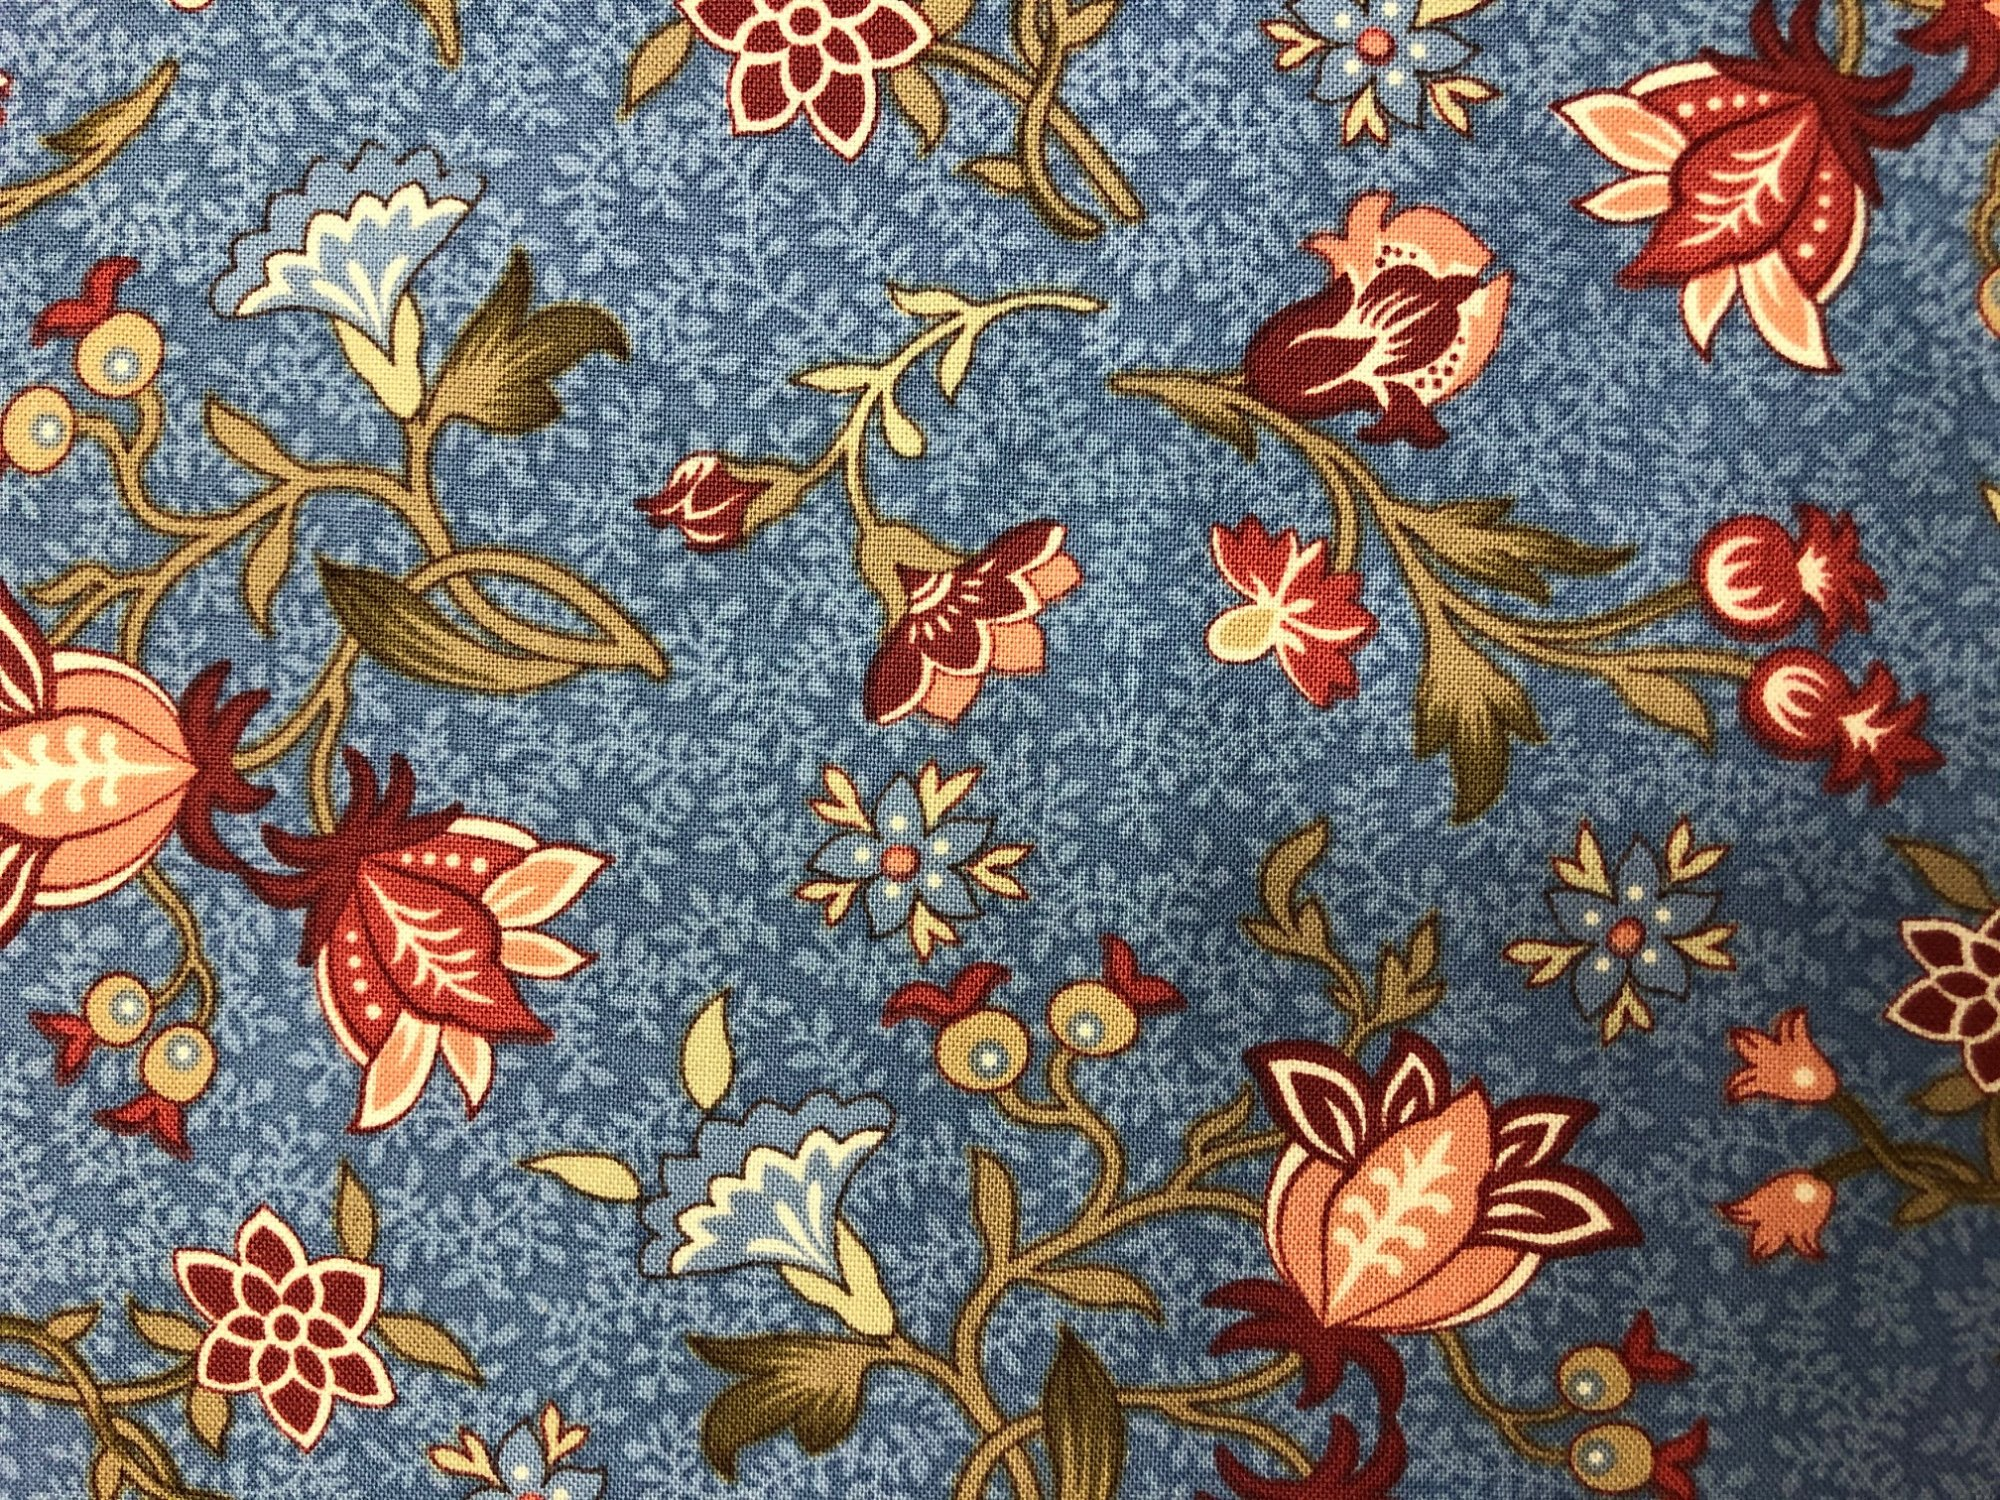 Tossed Floral 3-Yard Backing